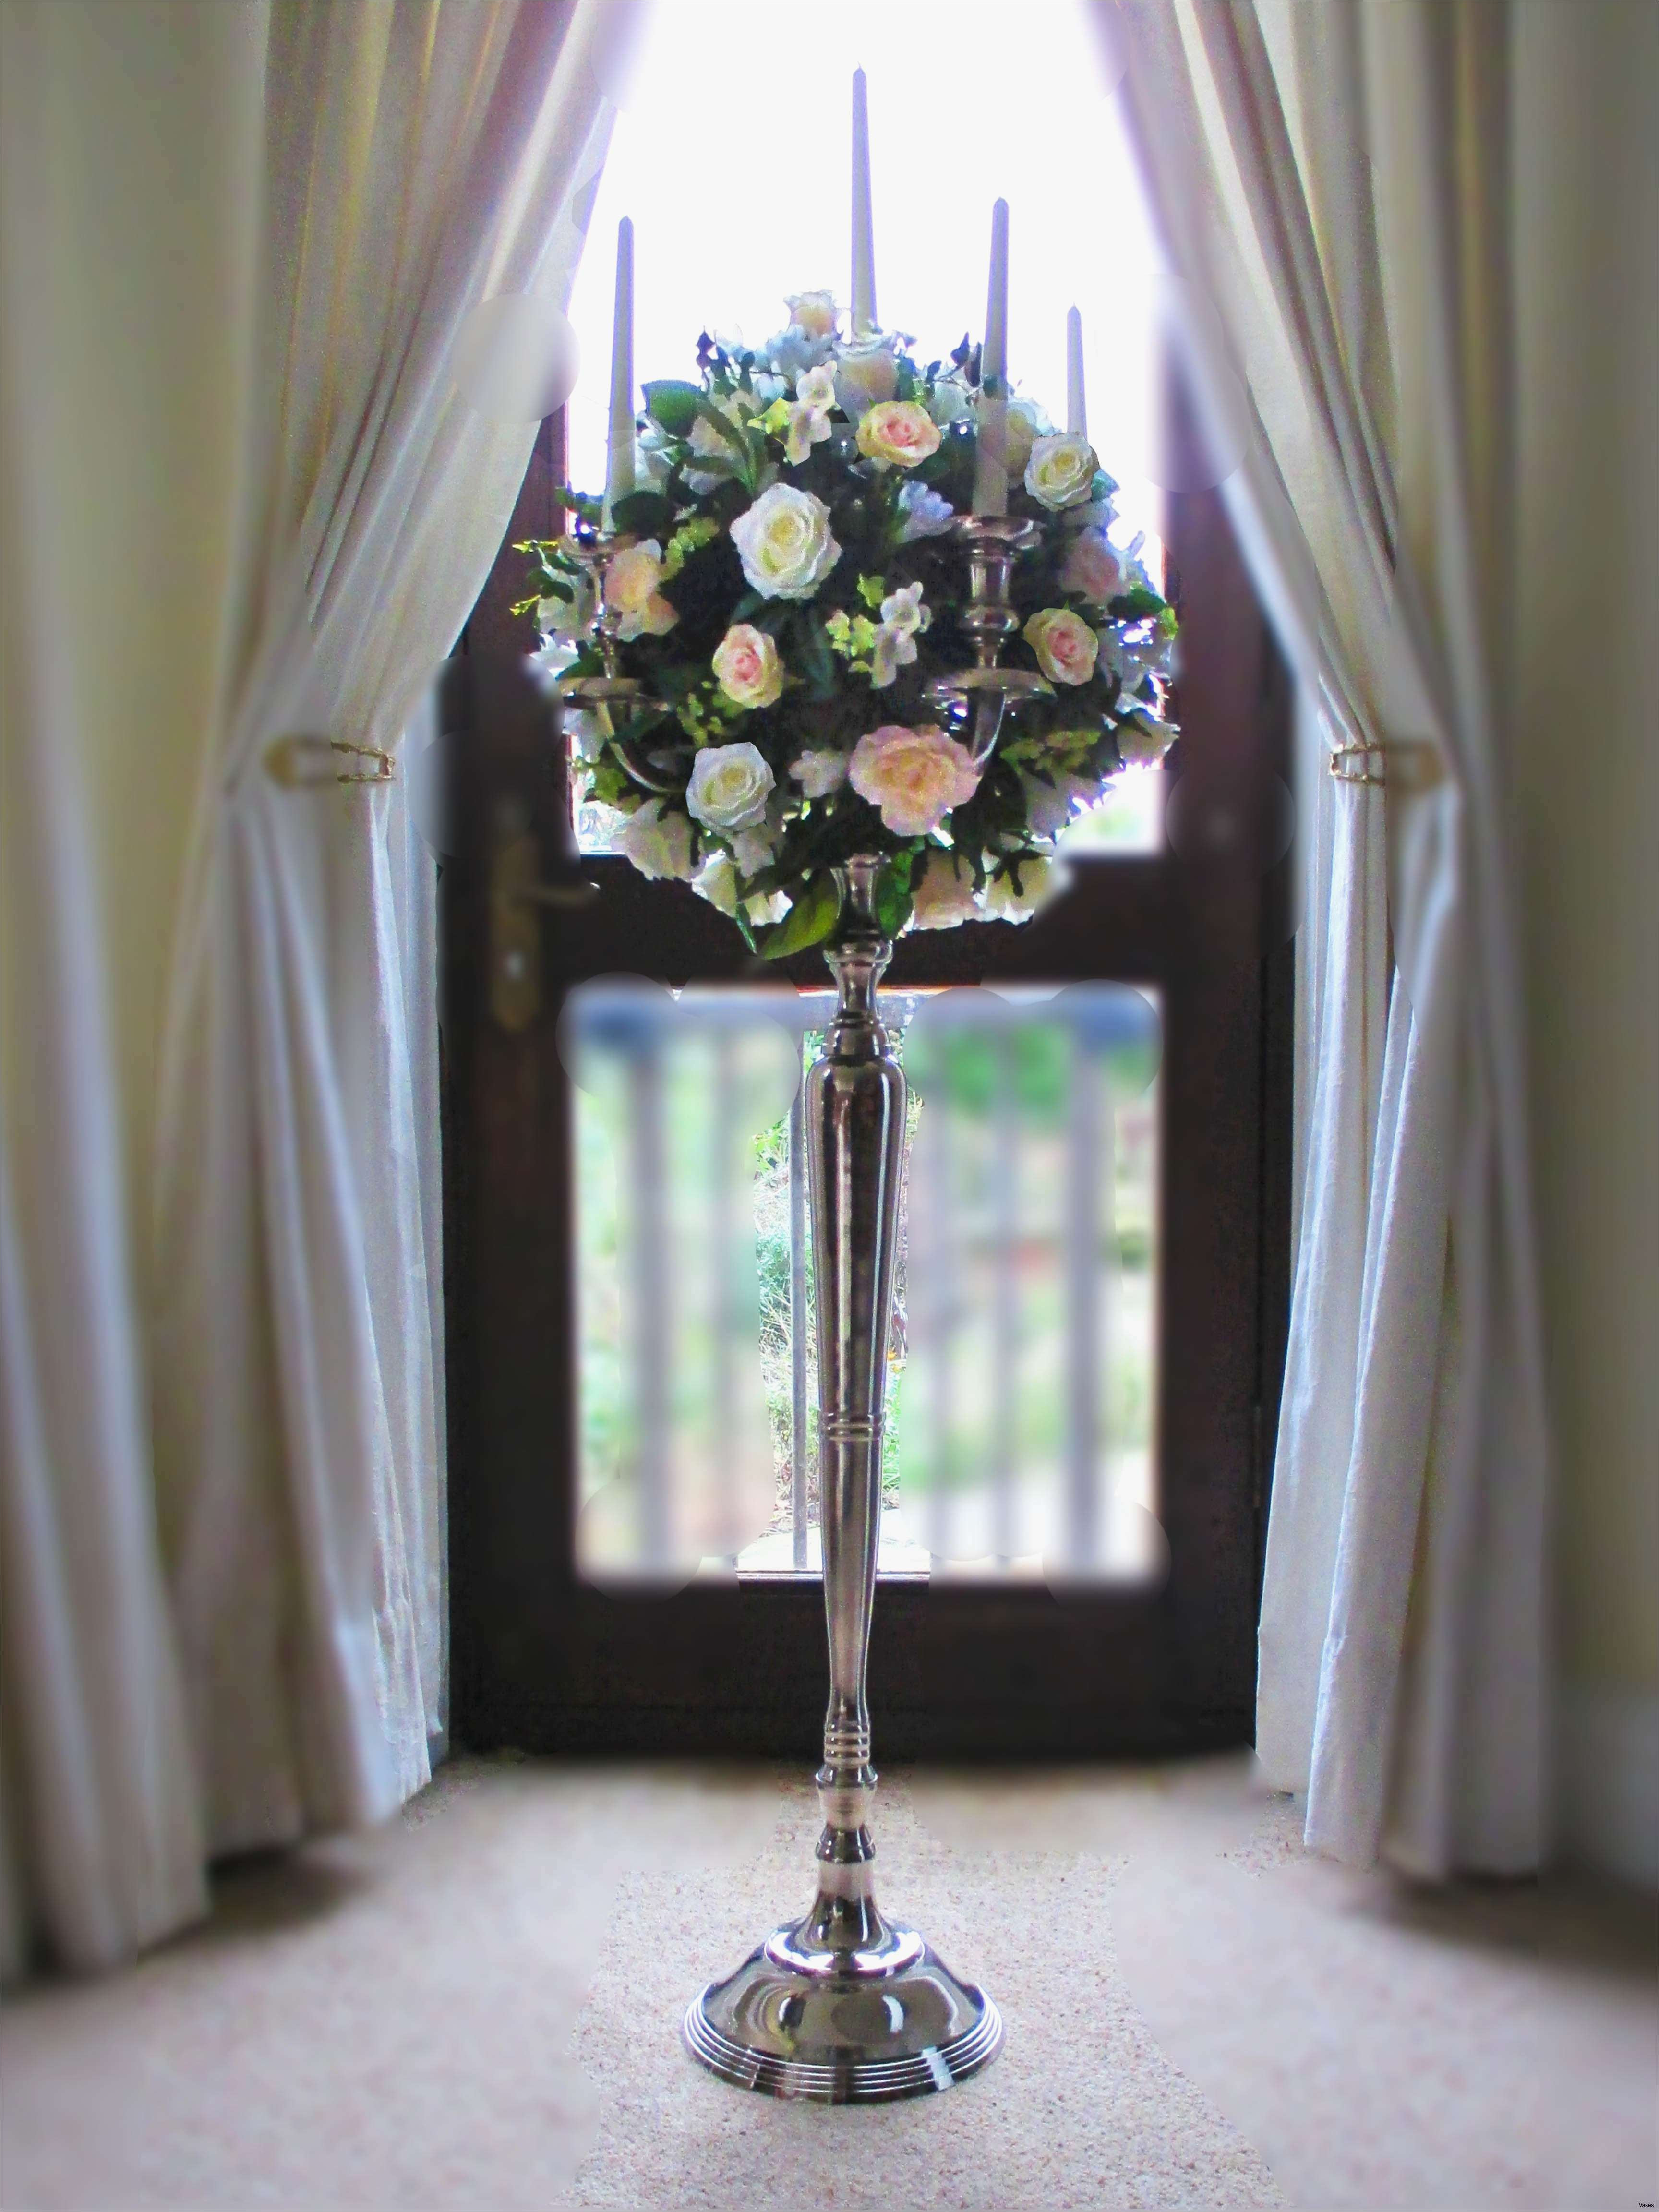 blush pink vase of autumn wedding free wedding fall wedding centerpieces best tall vase with regard to autumn wedding gallery cheap wedding bouquets packages 5397h vases silver vase leeds i 0d new